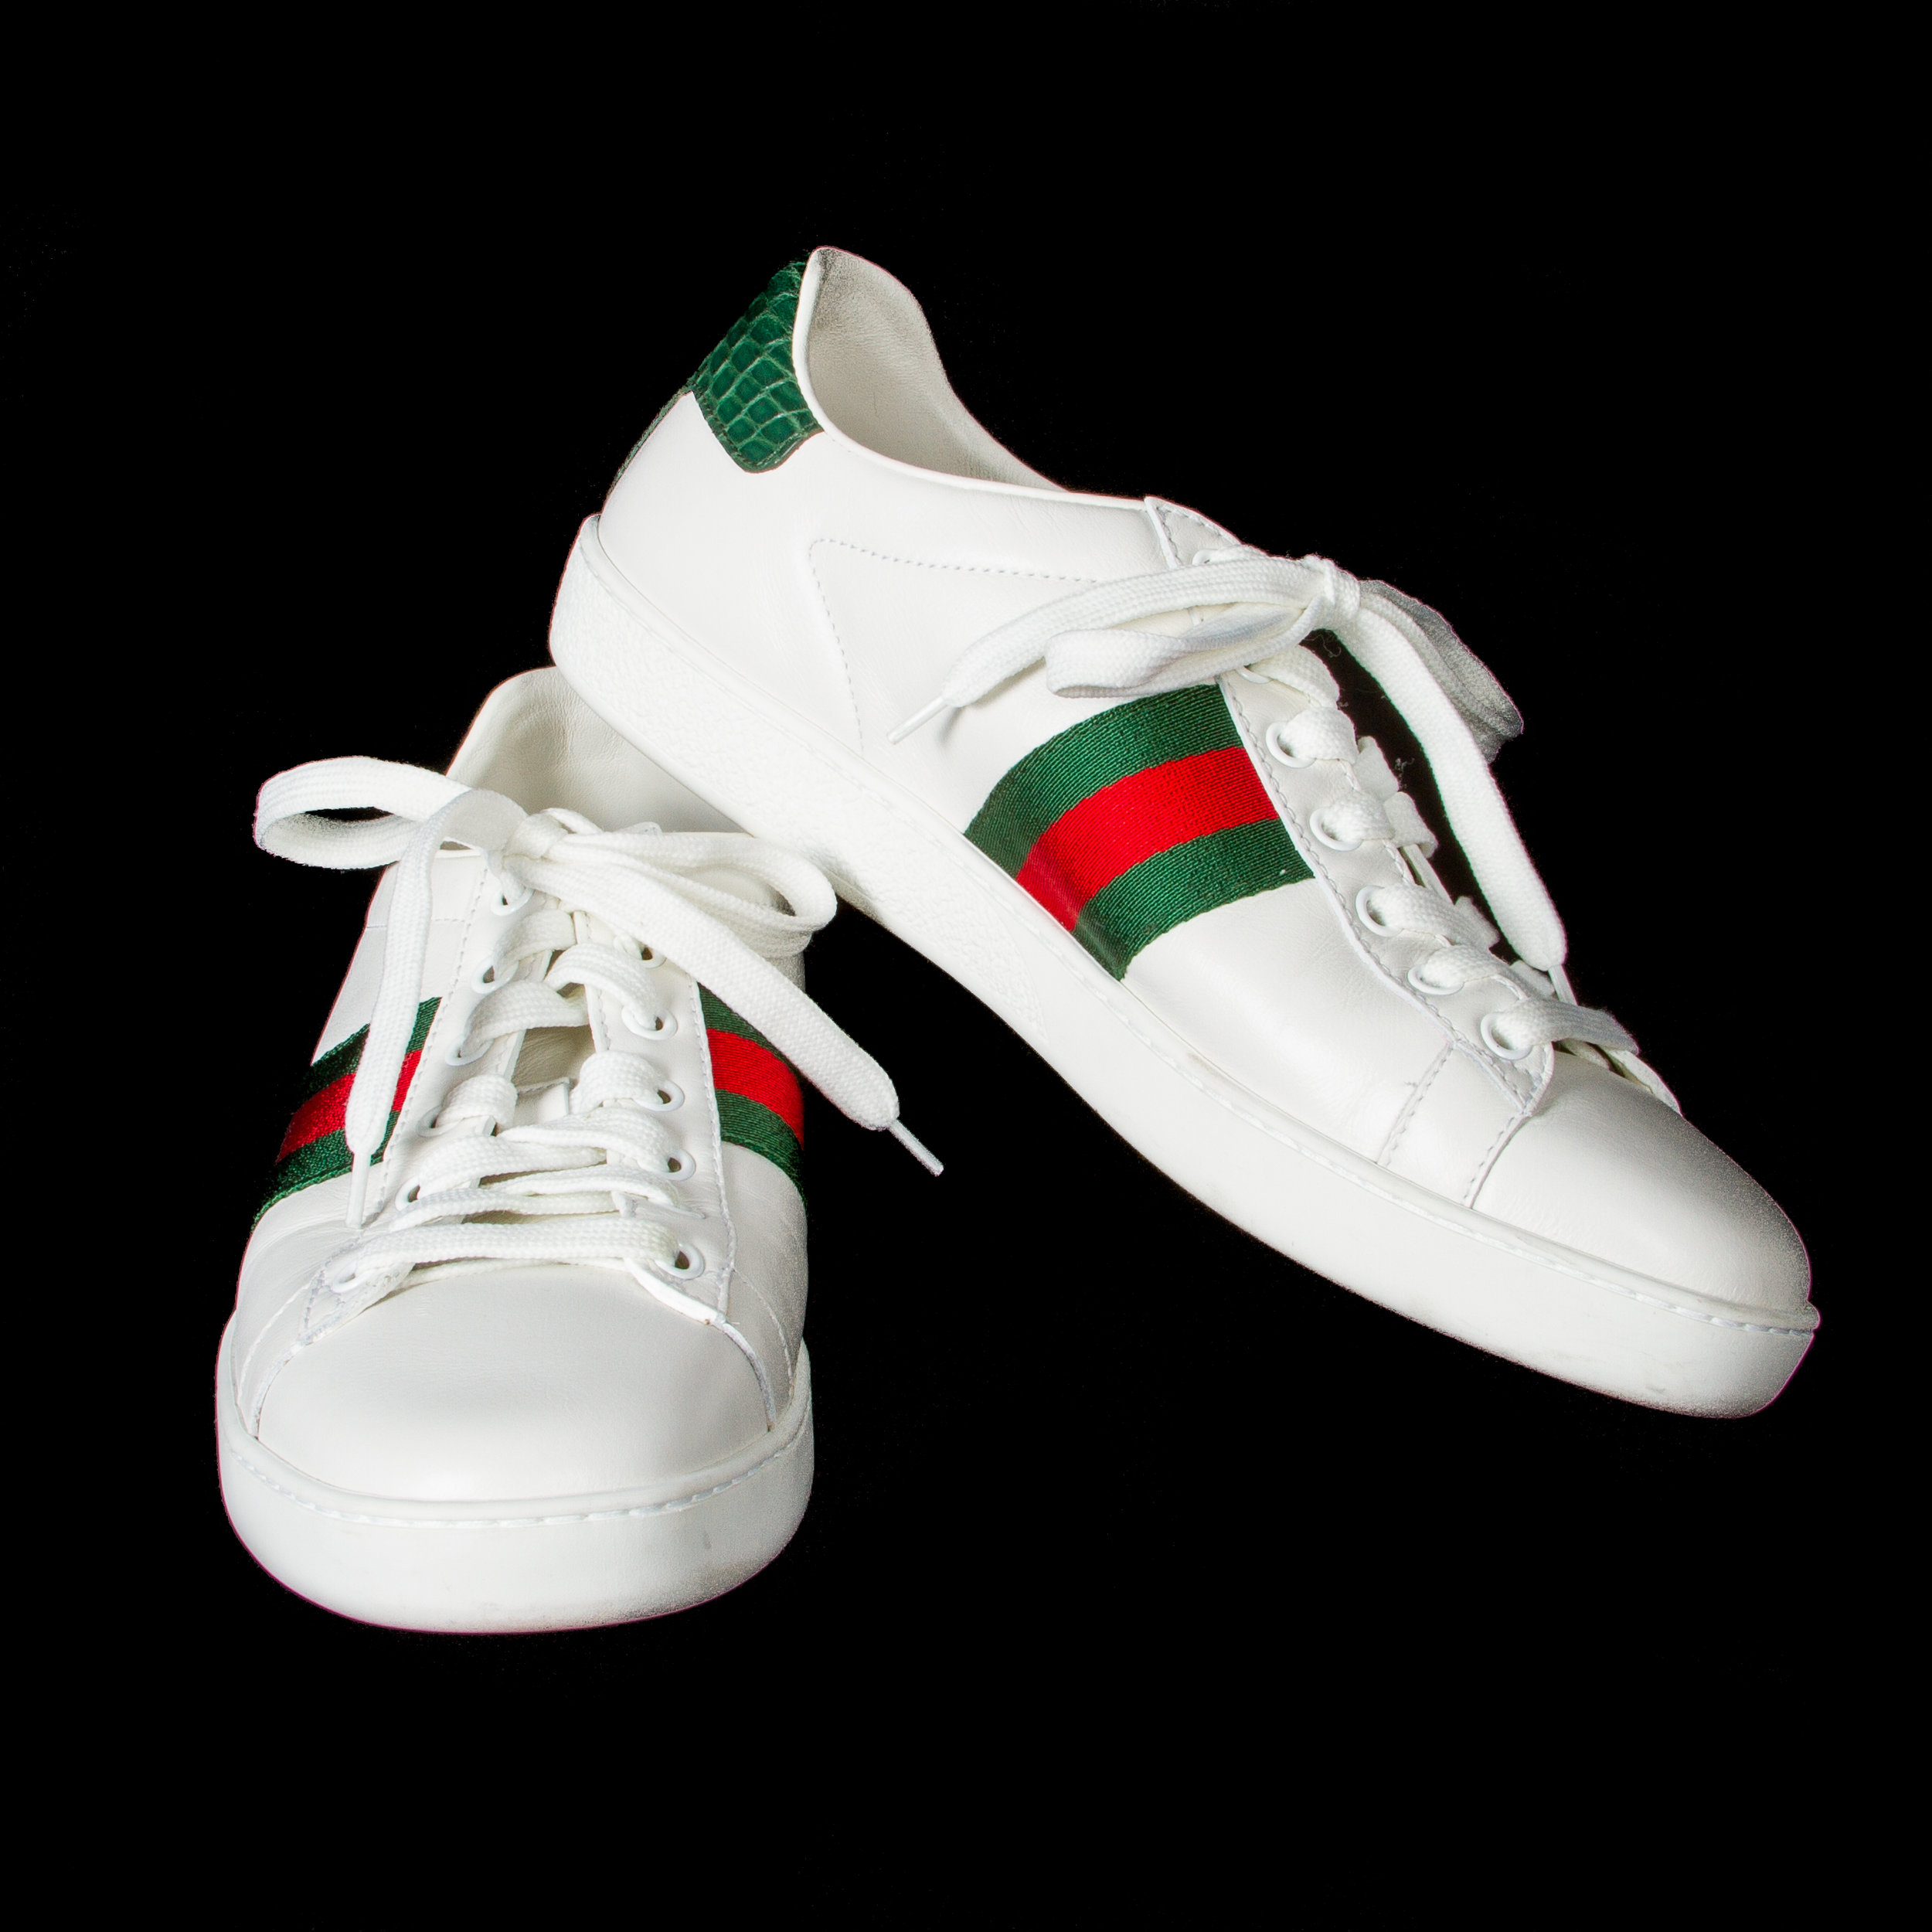 GucciShoes.jpg